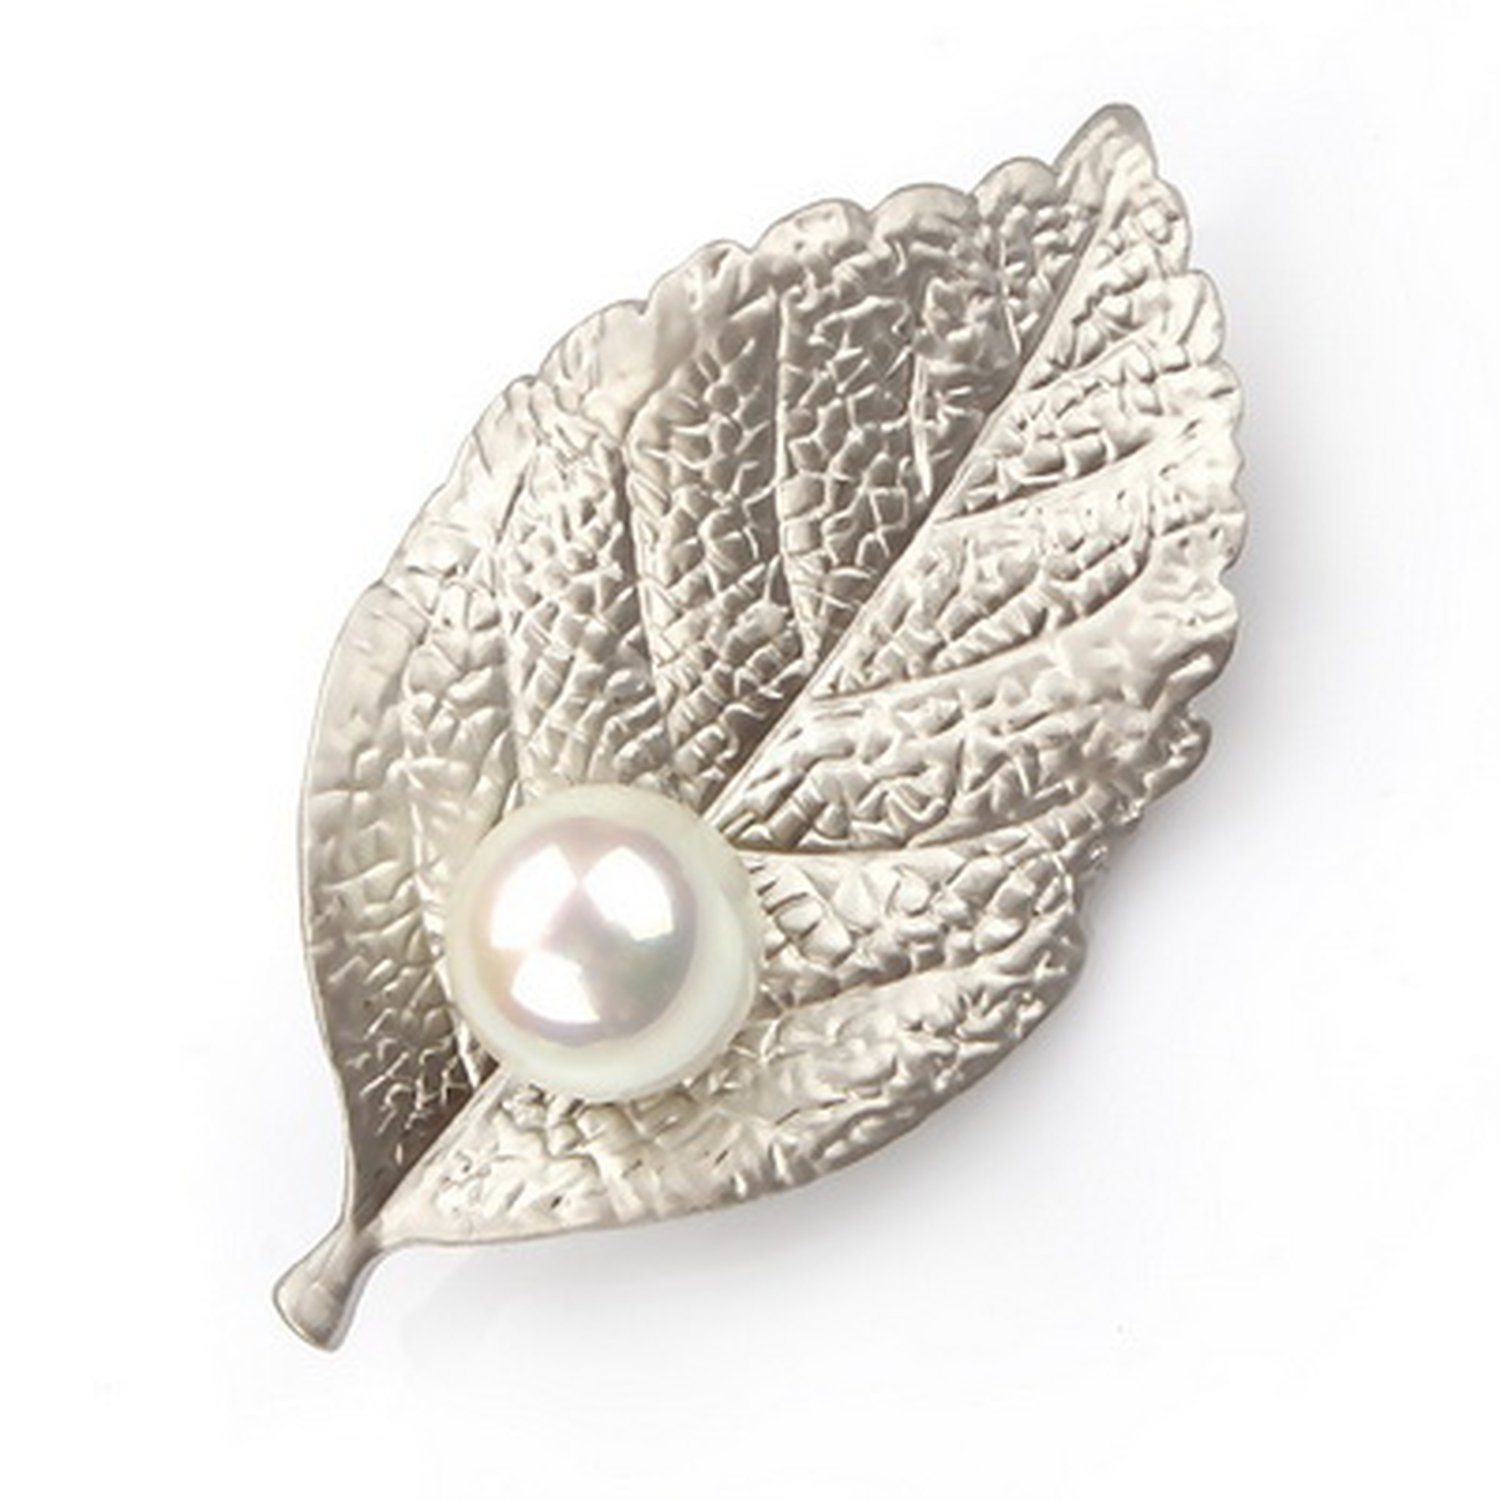 Baolustre Matt Silver Or Gold Color Leaf And Imitation Pearl Classic Brooch Wedding Party Gift,Matt Silver